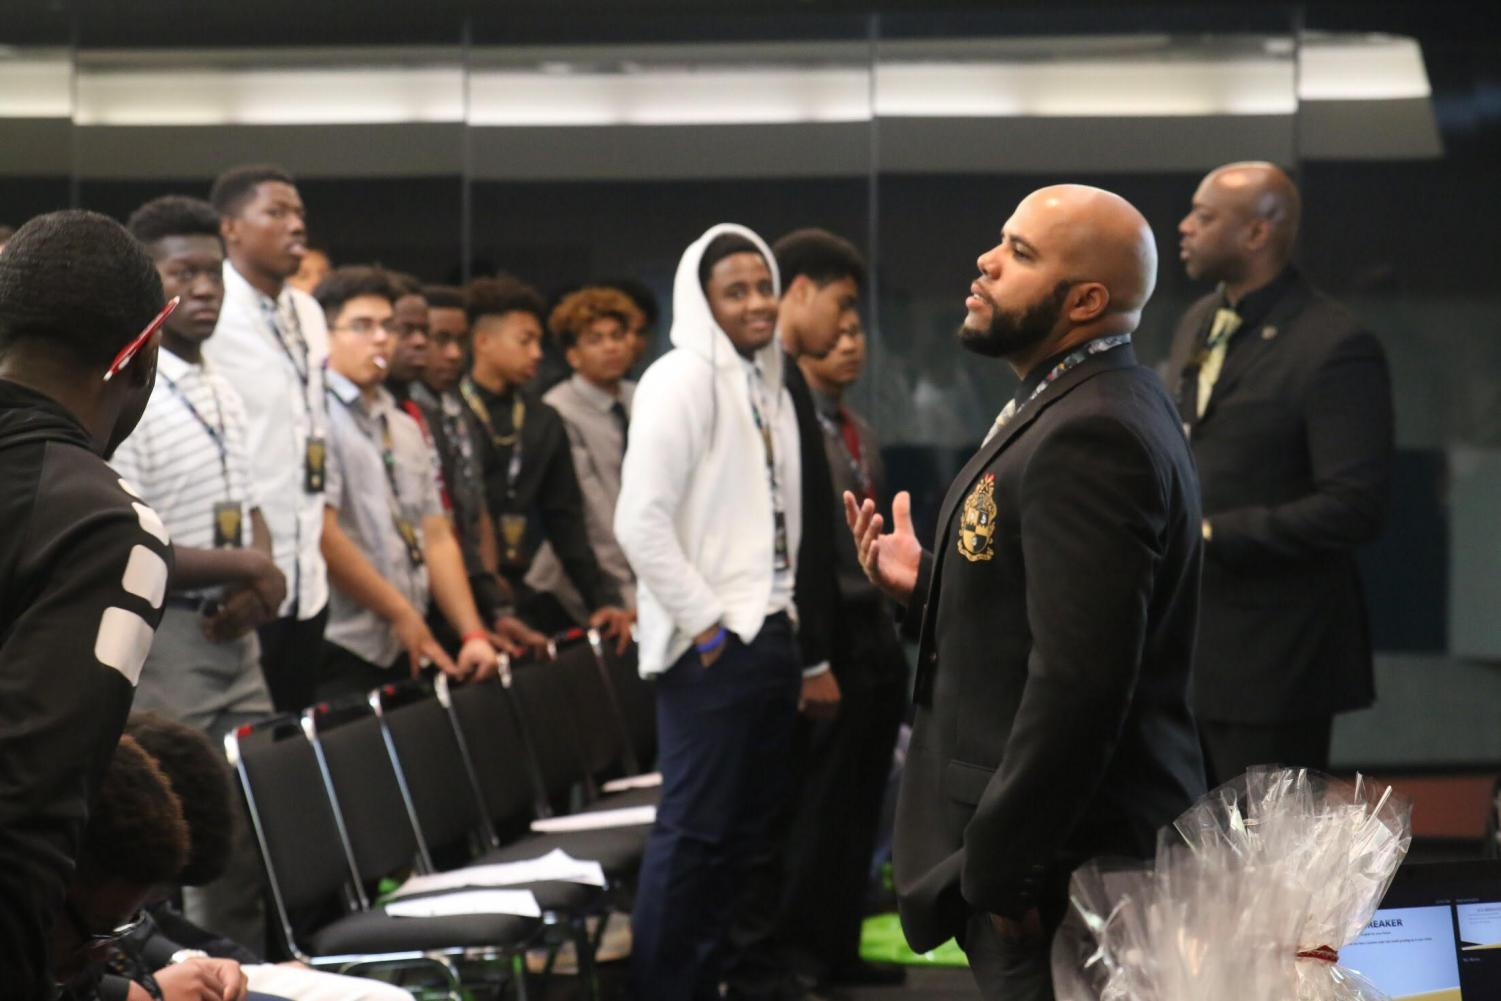 "FCC SYMBAA and IDILE Counselor Cedric Pulliam inspires young black men in a presentation given about ""Failing Forward"", at the 11th annual African American Leadership Conference at the Fresno Convention Center on Thursday, Feb. 8, 2018."